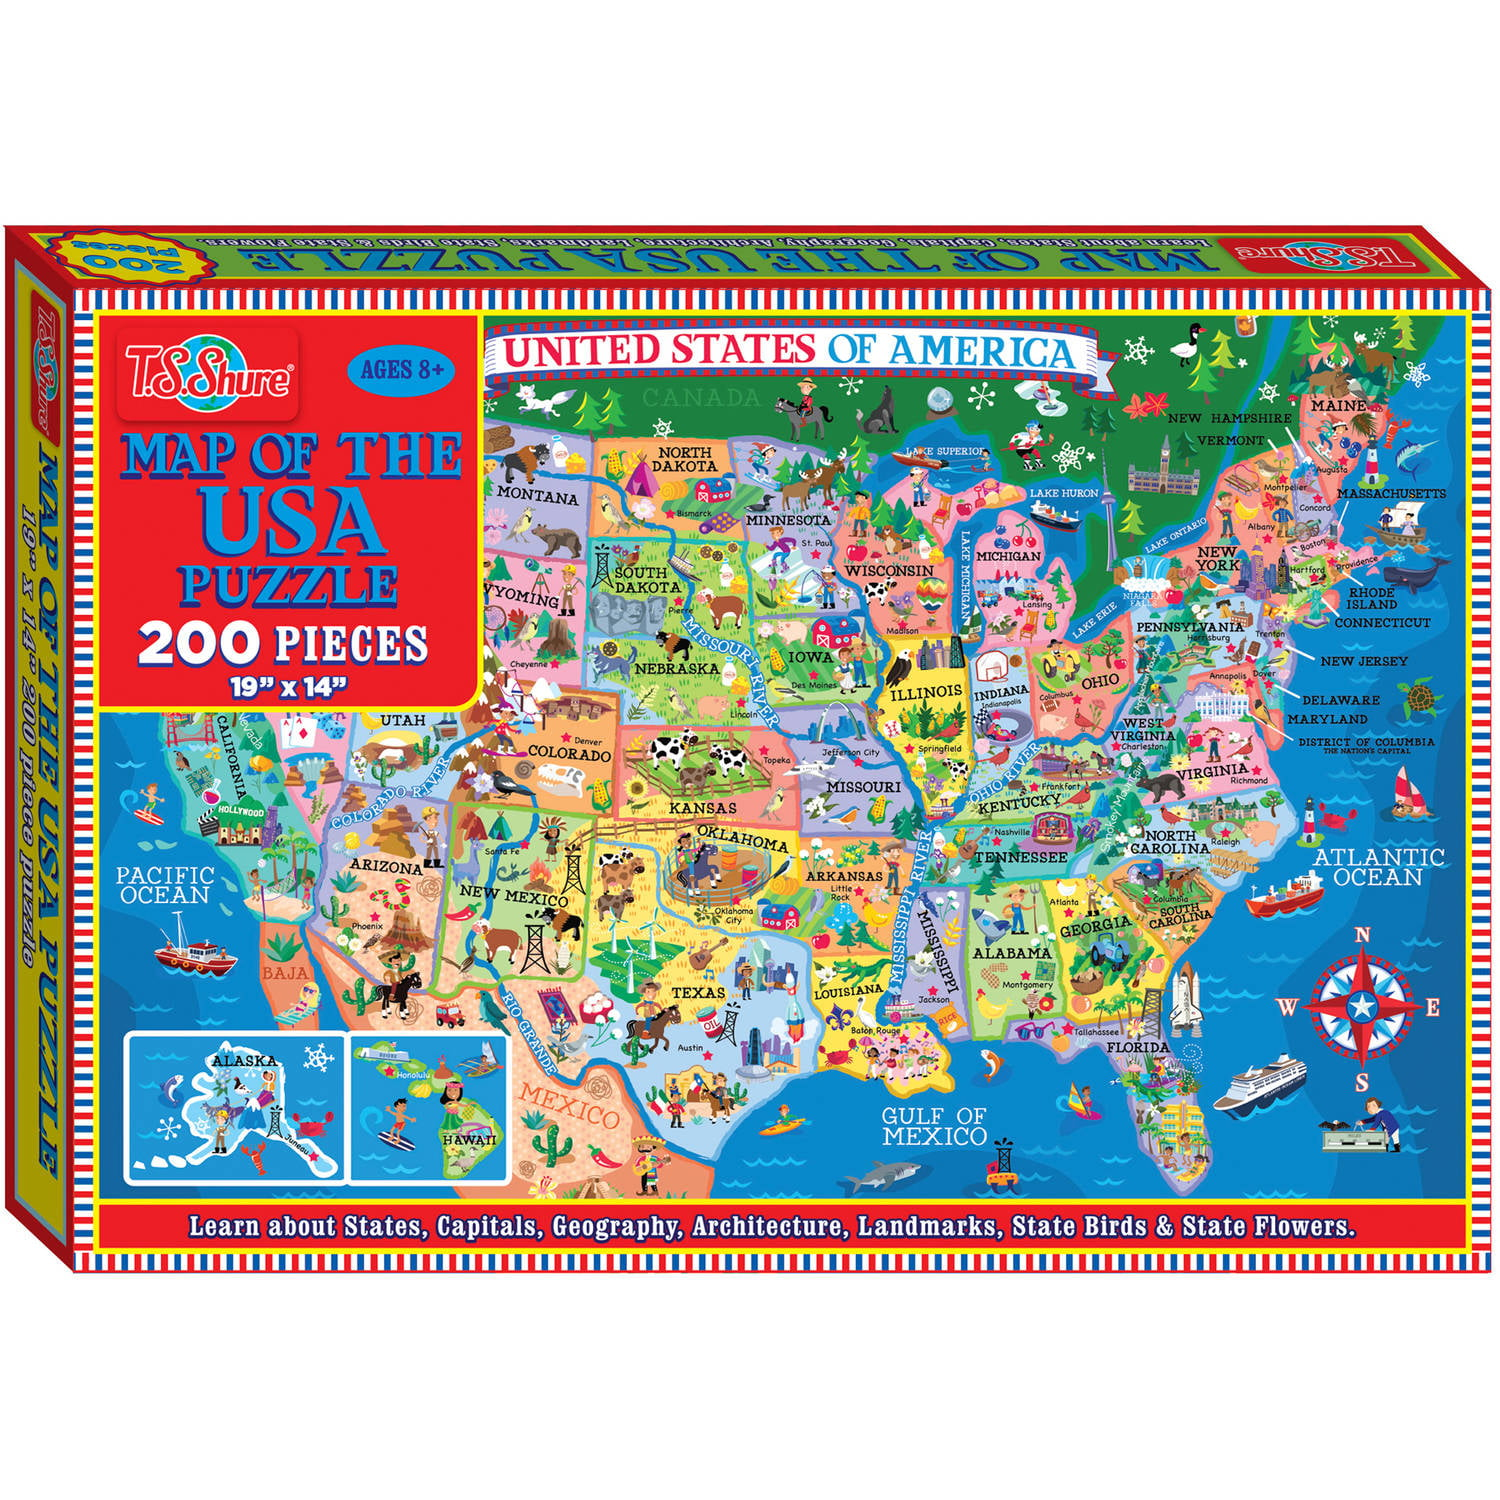 T.S. Shure Map of the U.S.A. Jigsaw Puzzle, 200 Pieces by T.S. Shure